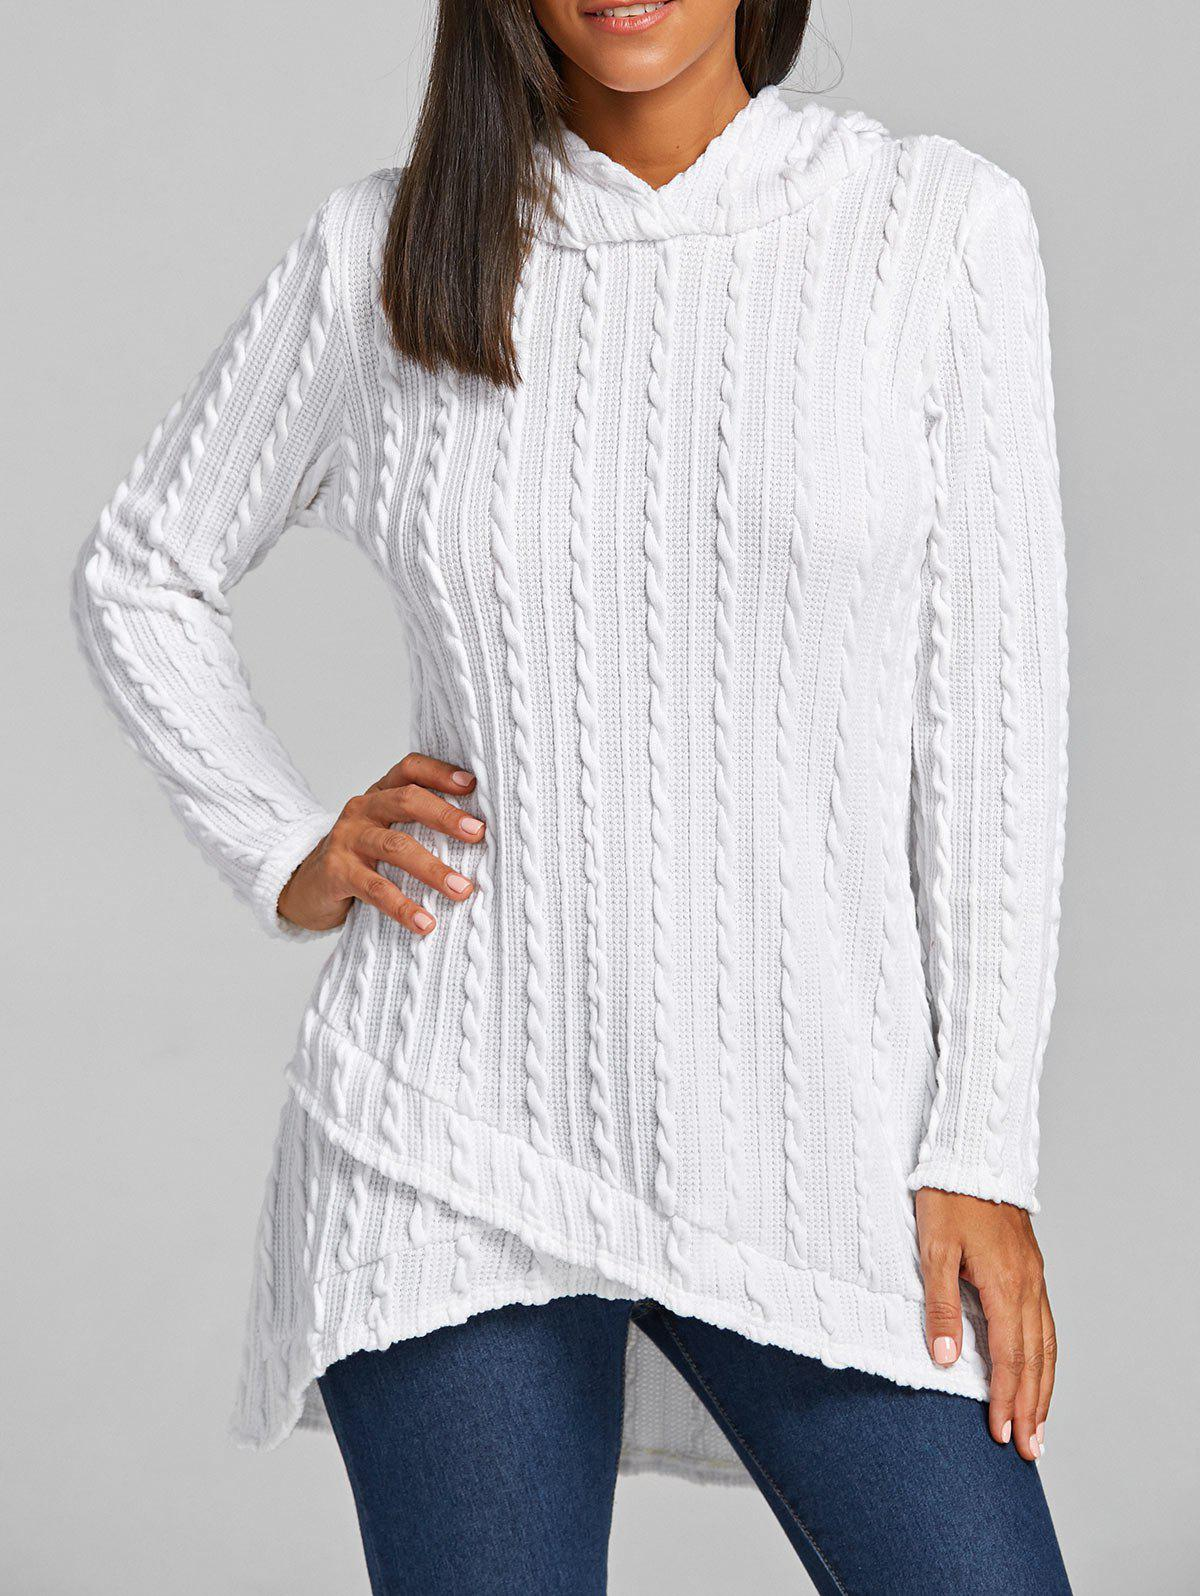 Cable Knitted Hooded Tunic SweaterWOMEN<br><br>Size: 2XL; Color: WHITE; Type: Pullovers; Material: Cotton,Polyester; Sleeve Length: Full; Collar: Hooded; Style: Fashion; Pattern Type: Solid; Season: Fall,Spring; Weight: 0.6240kg; Package Contents: 1 x Sweater;